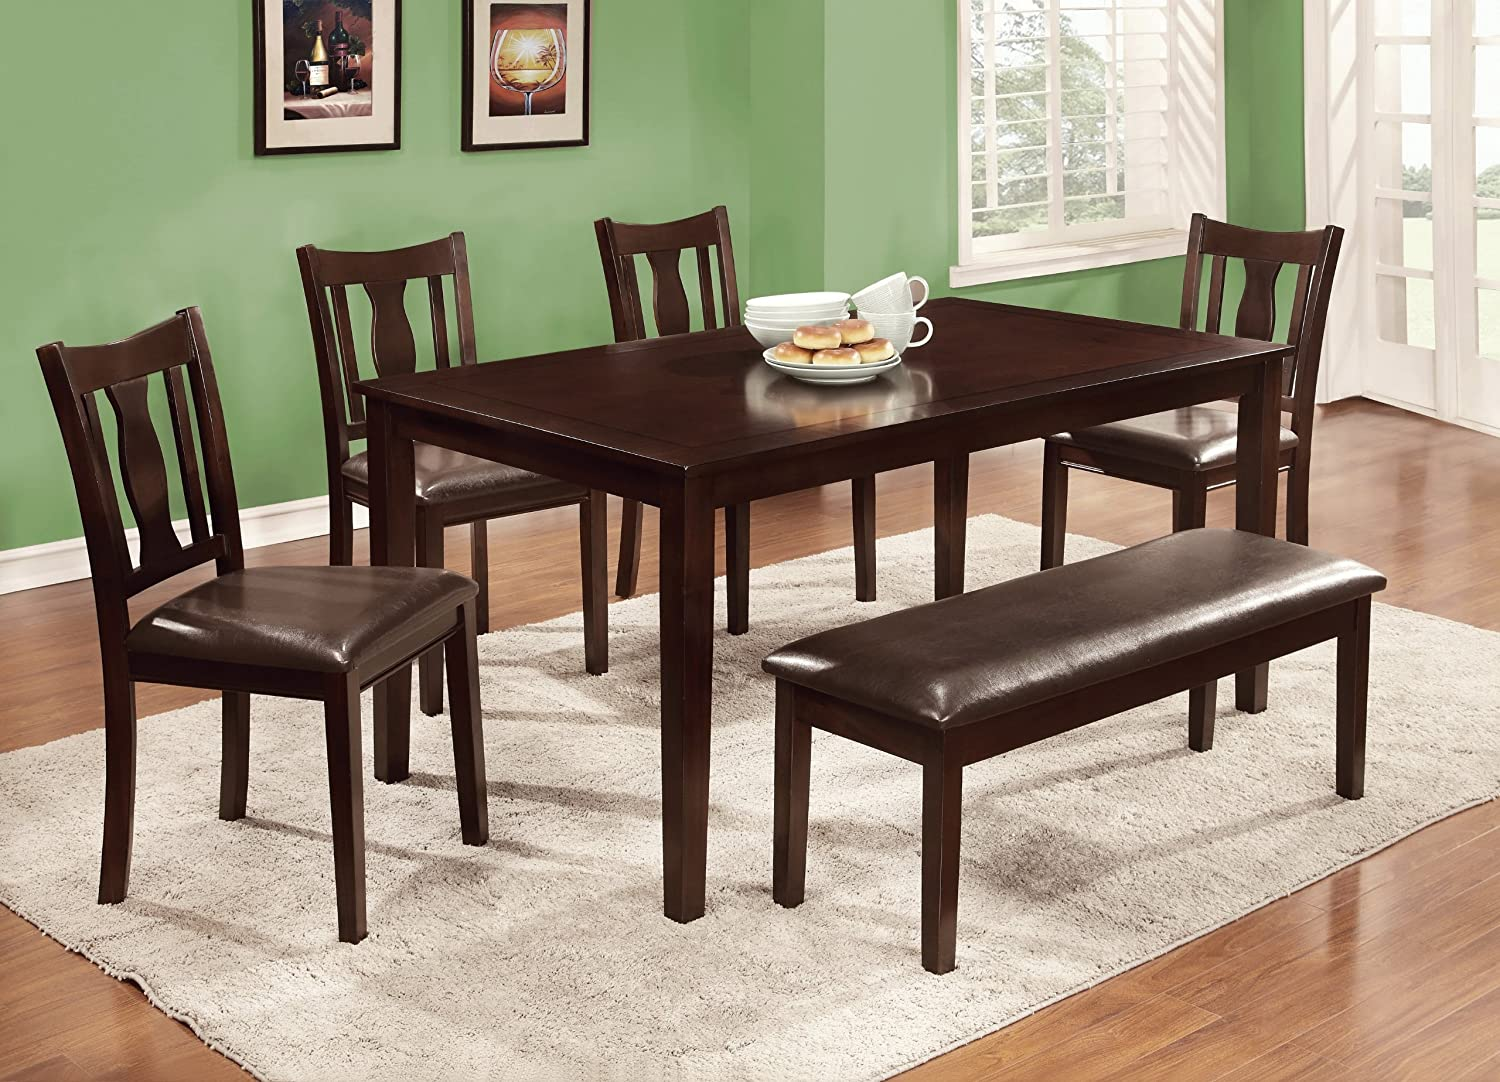 Amazon.com   Furniture Of America Jolene 6 Piece Dining Table Set With  Bench, Espresso Finish   Table U0026 Chair Sets